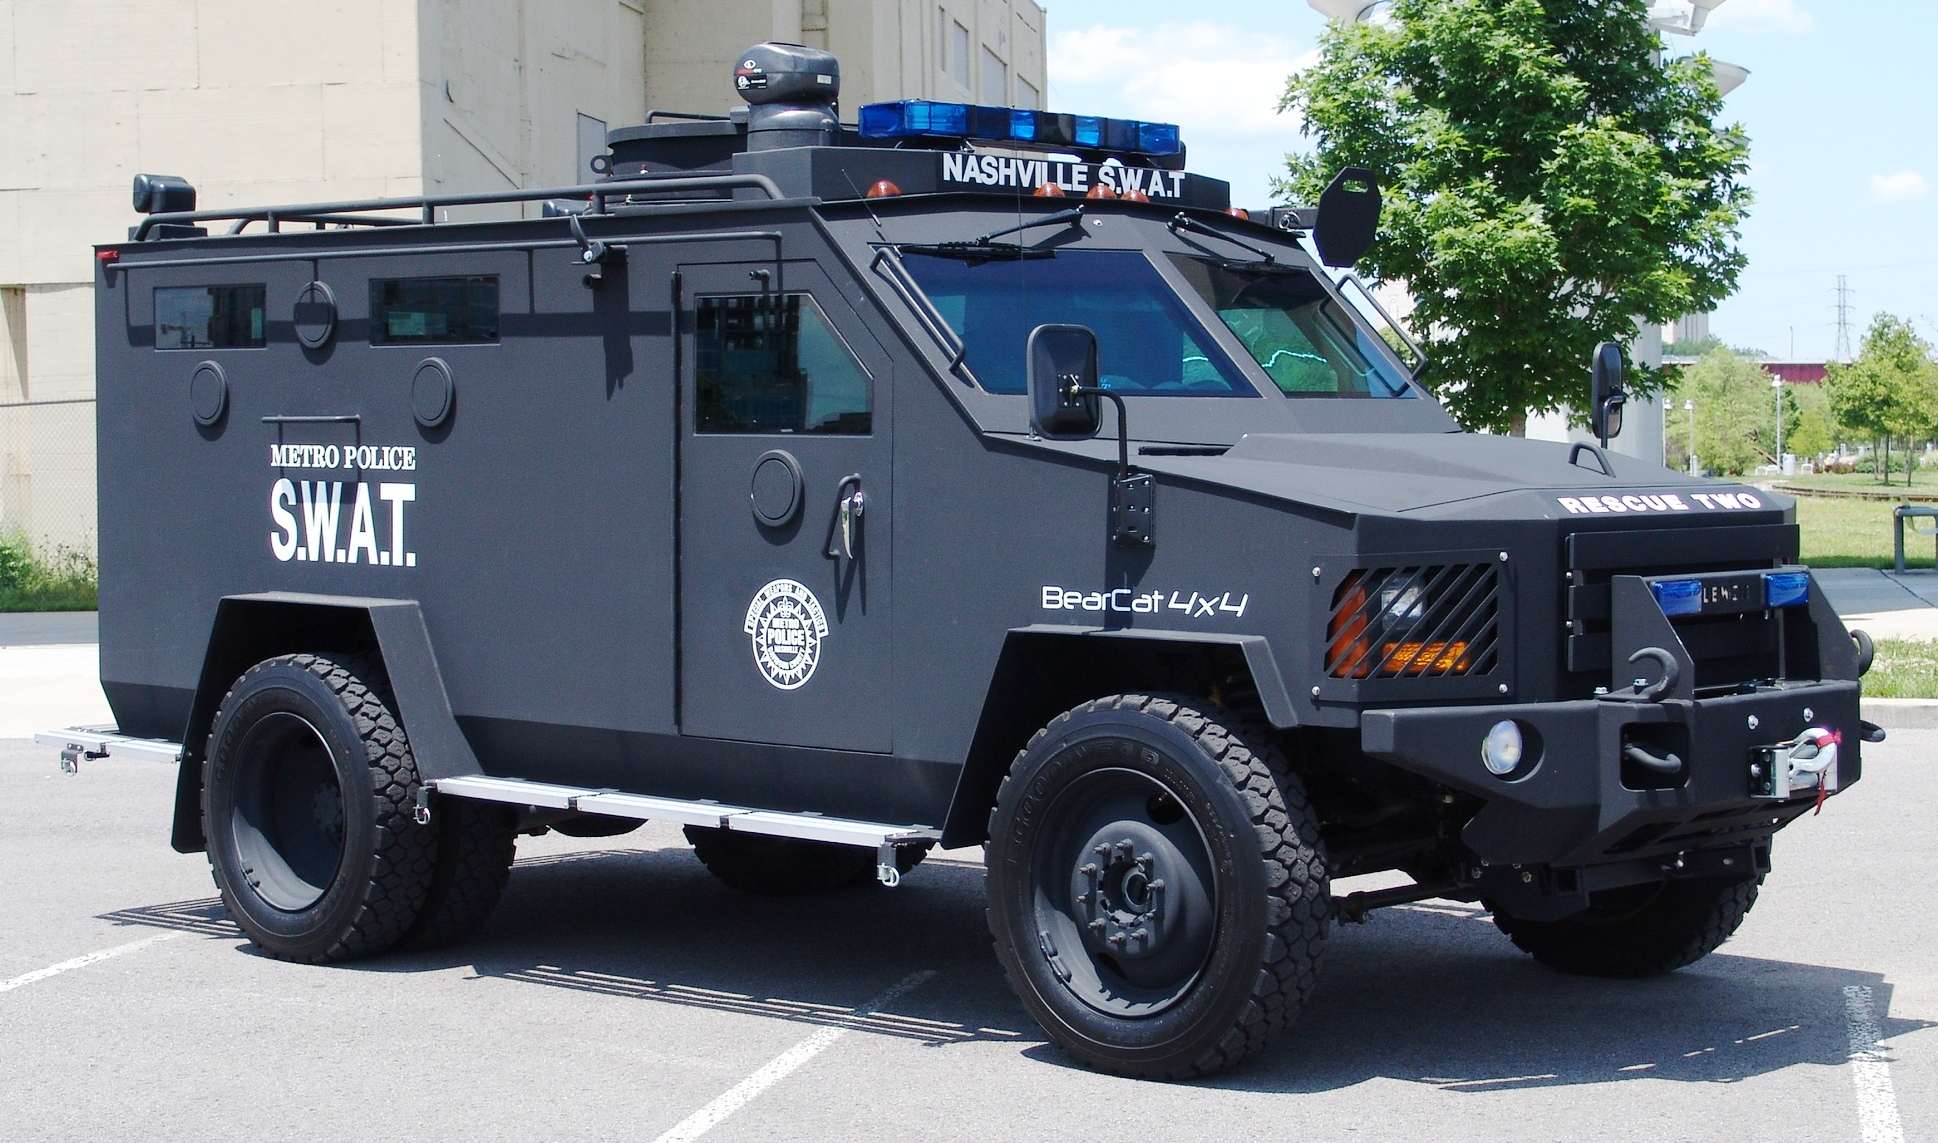 A BearCat armored vehicle used by the Nashville Police Department.